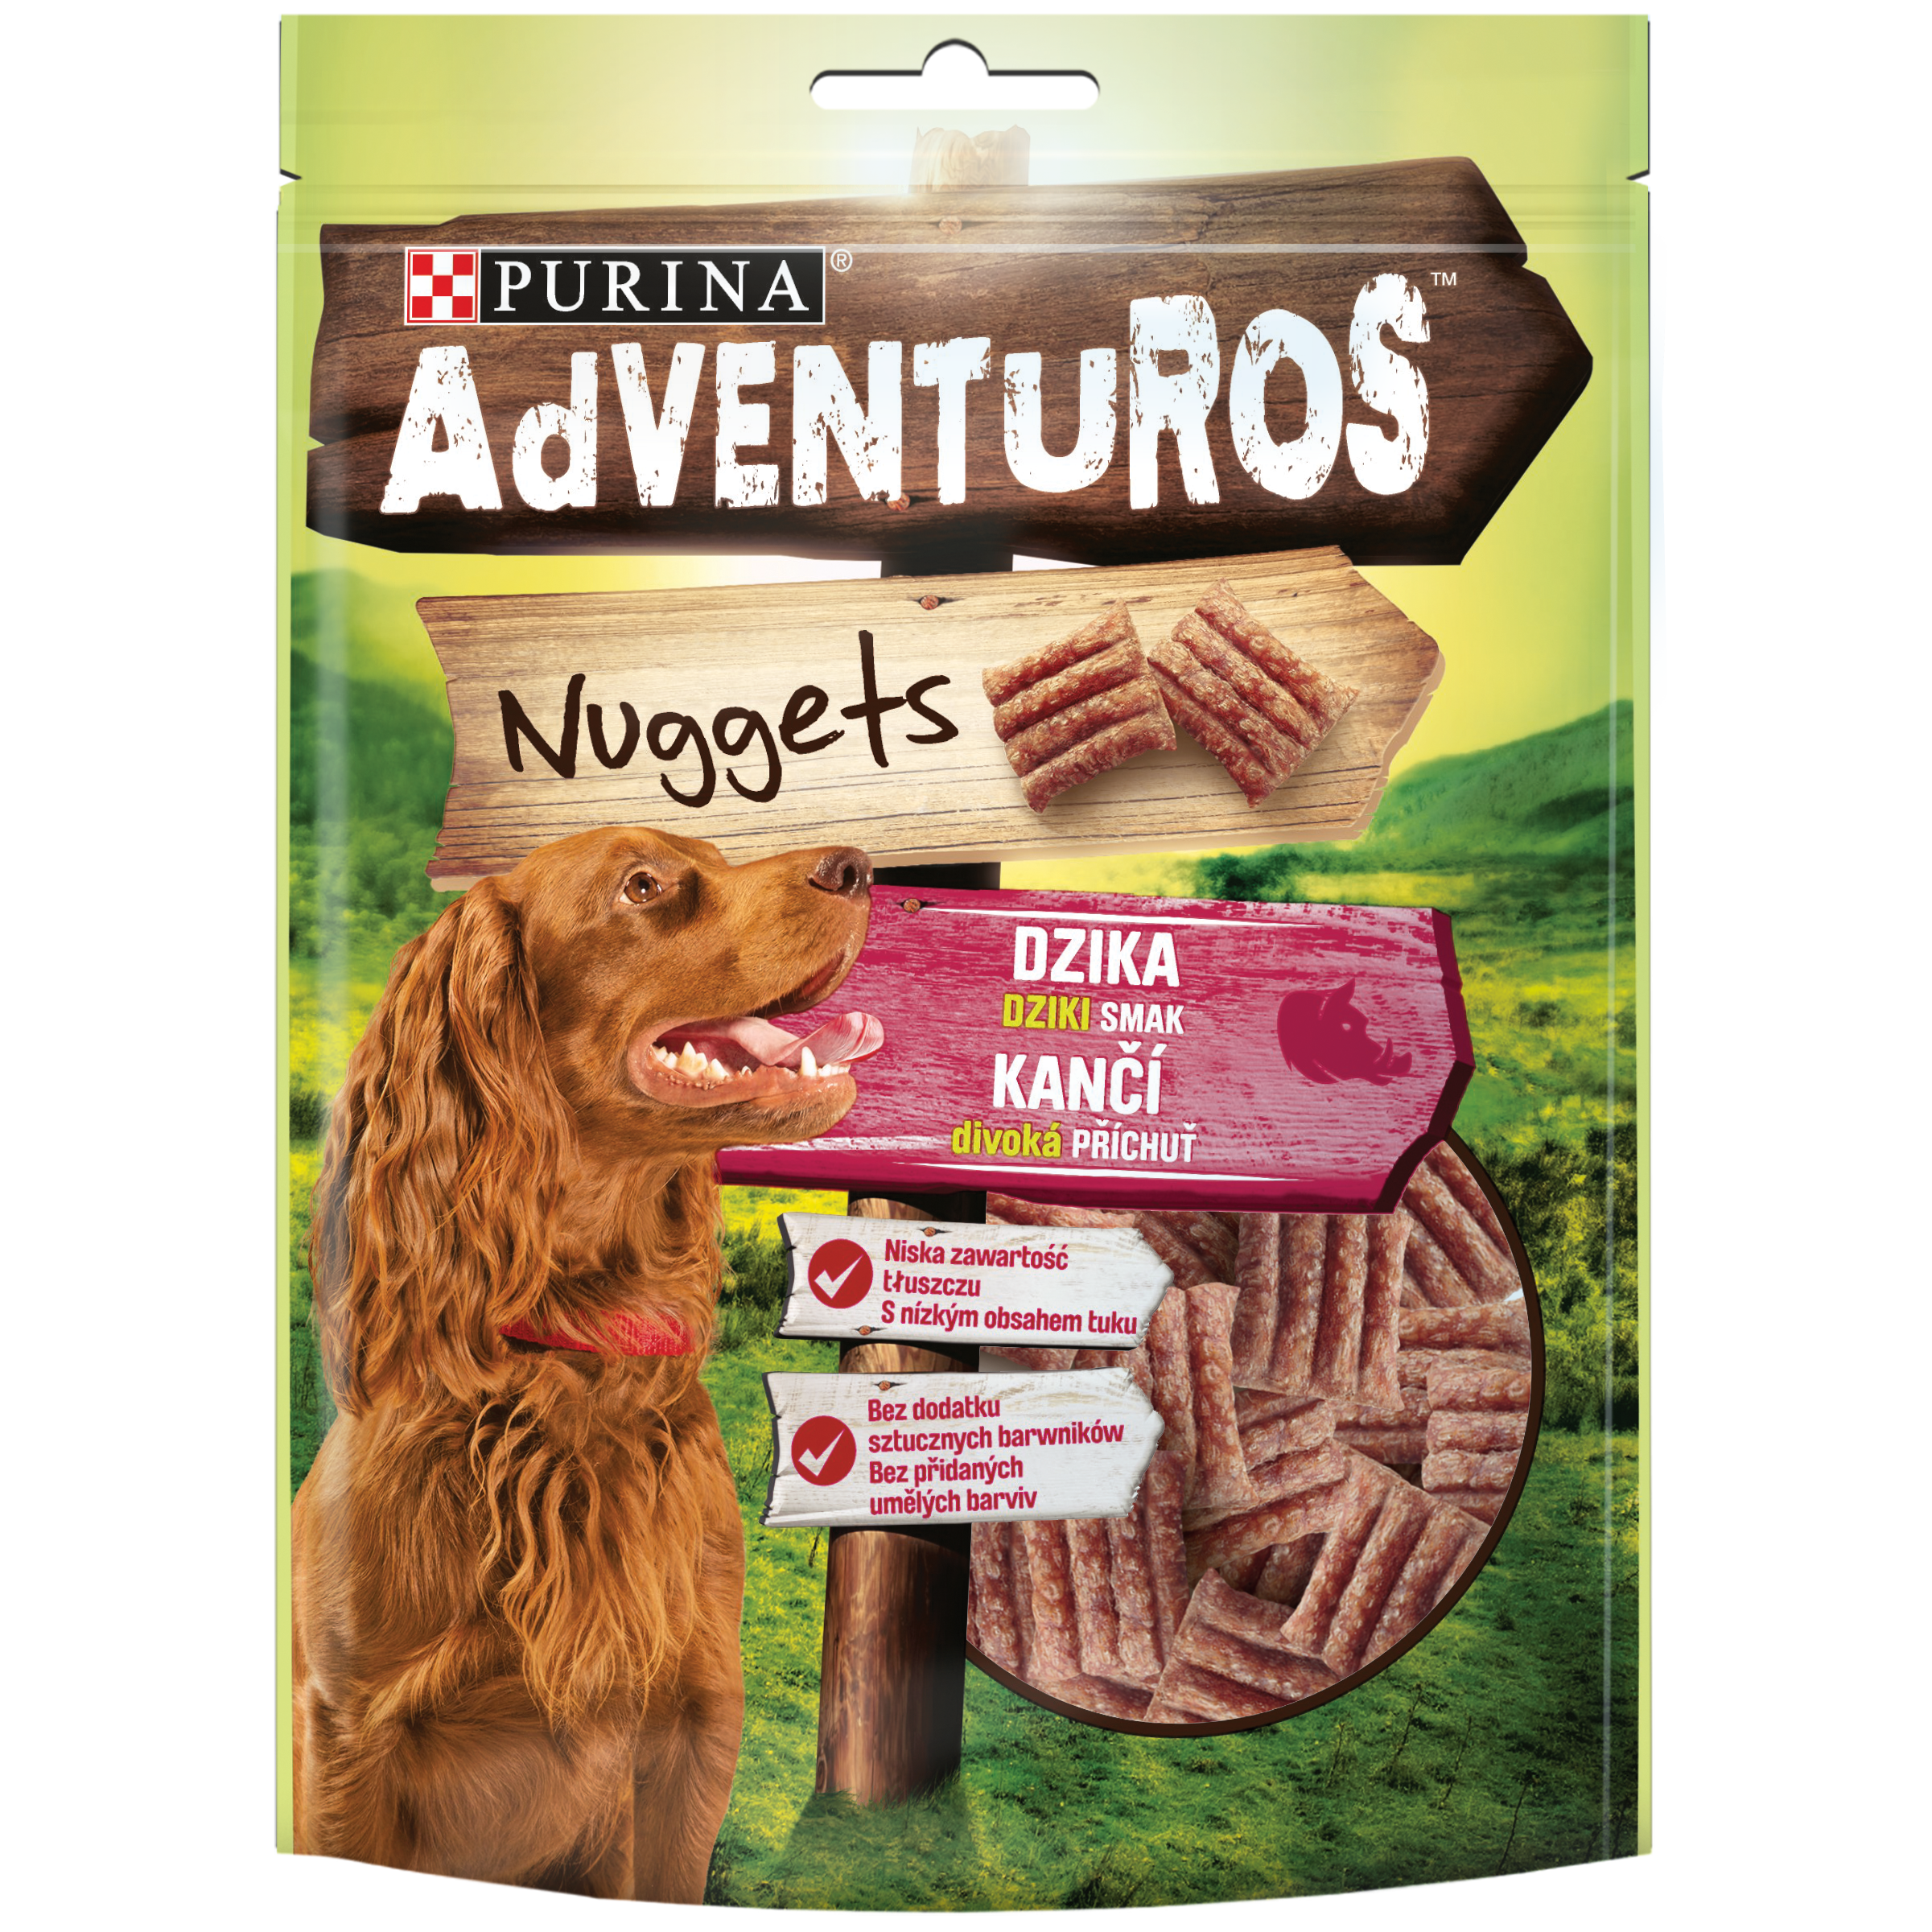 Purina AdVENTuROS Nuggets Dziki smak dzika